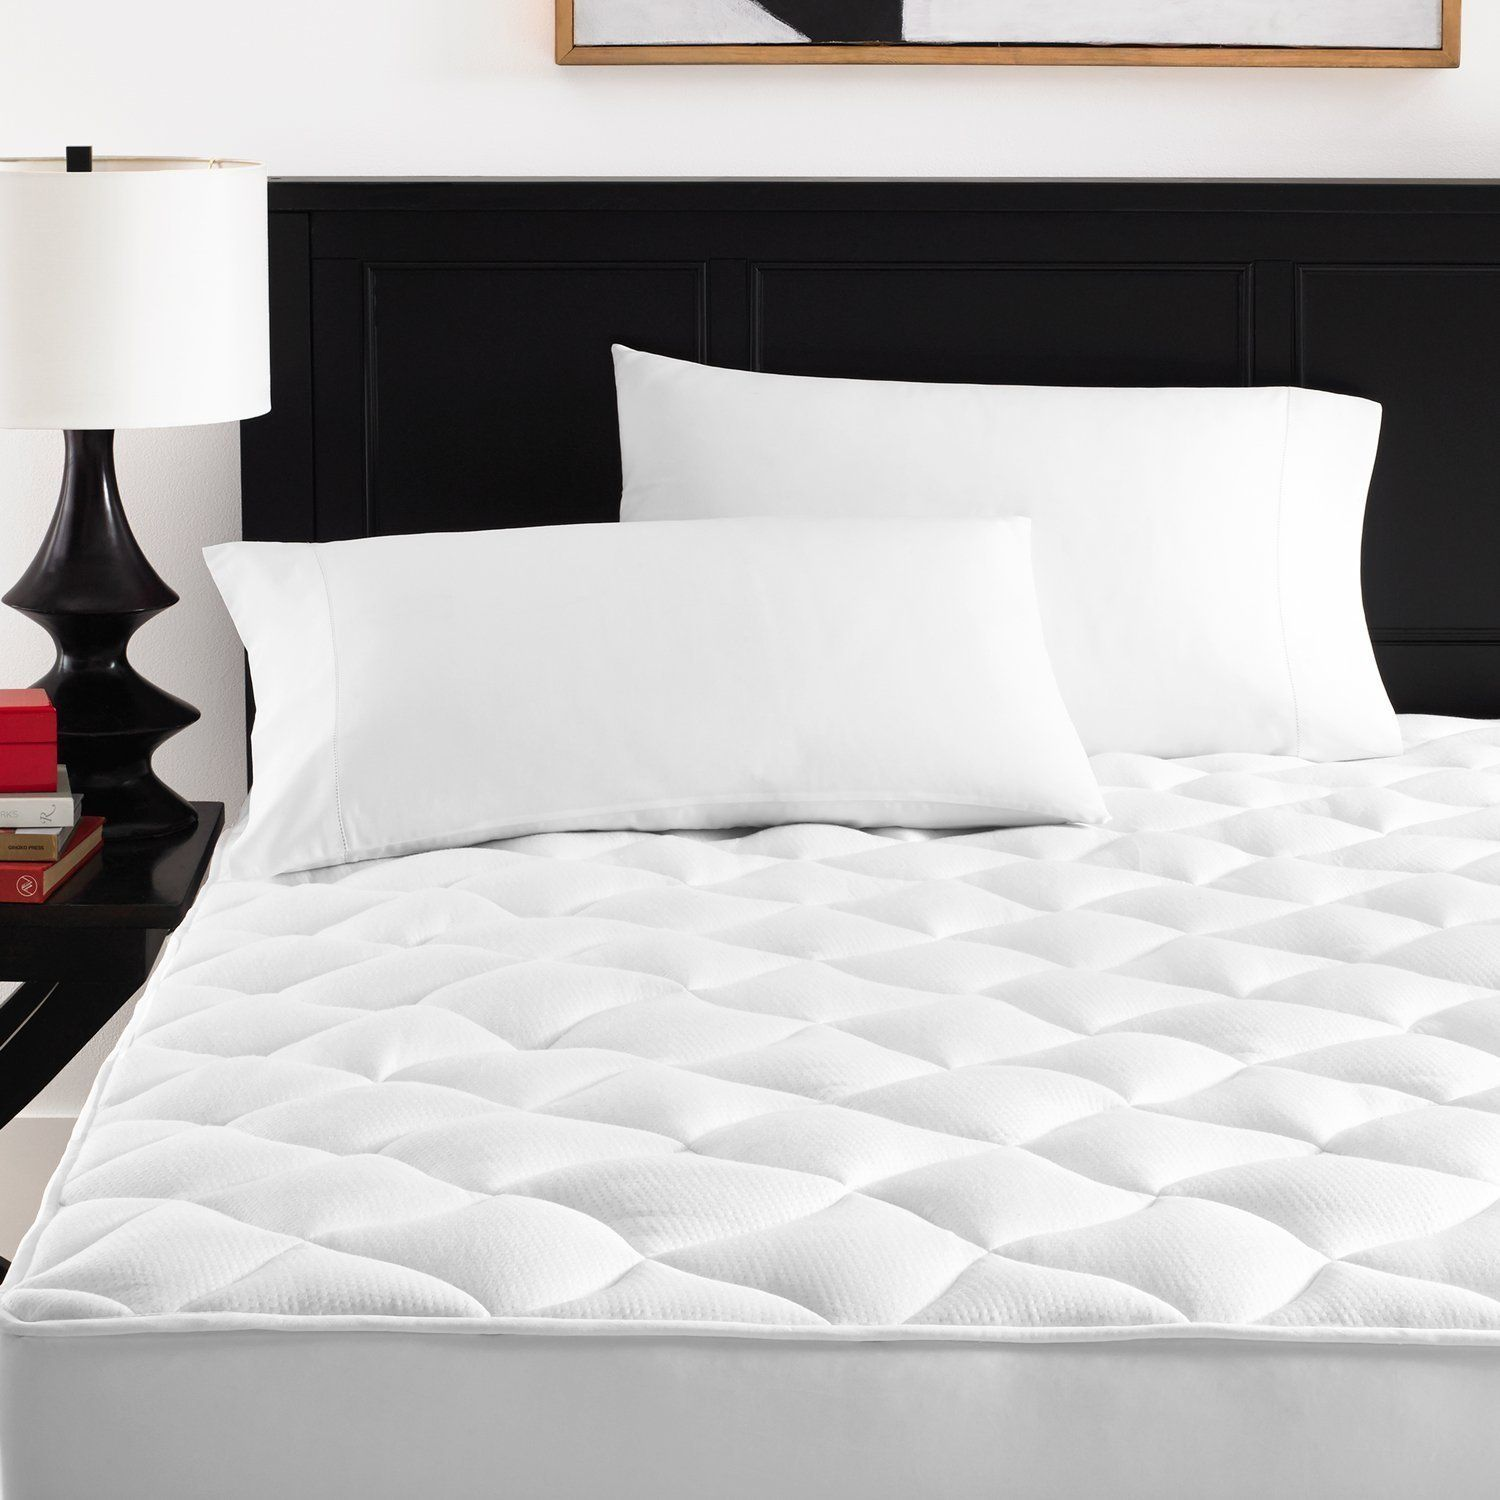 Comfy Mattress Make Your Dorm Bed Feel Like A Pillow And Get Yourself A Comfy